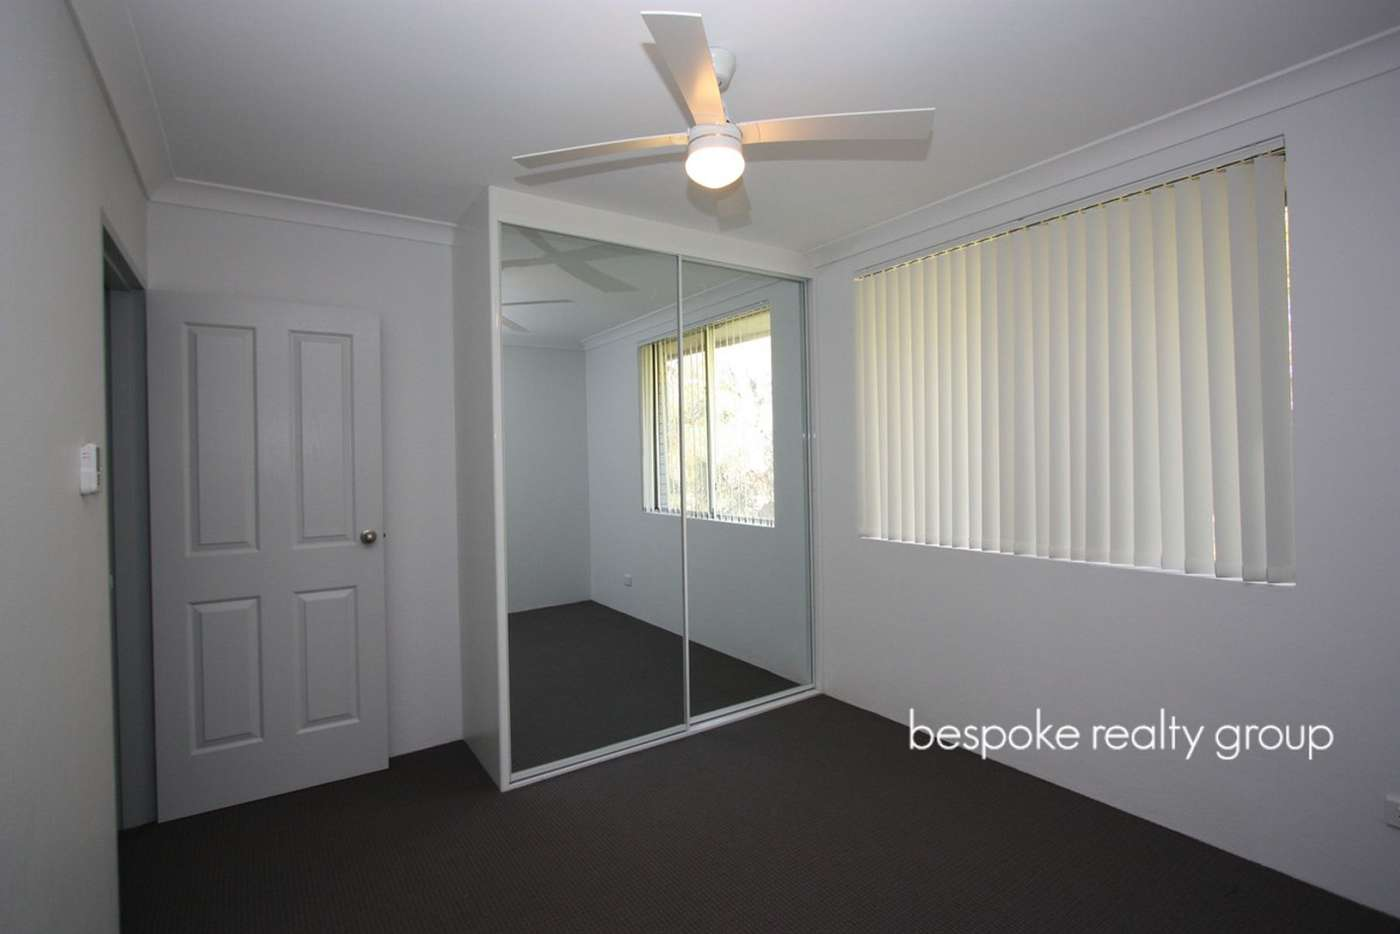 Fifth view of Homely apartment listing, 9/10-12 Albert Steet, North Parramatta NSW 2151